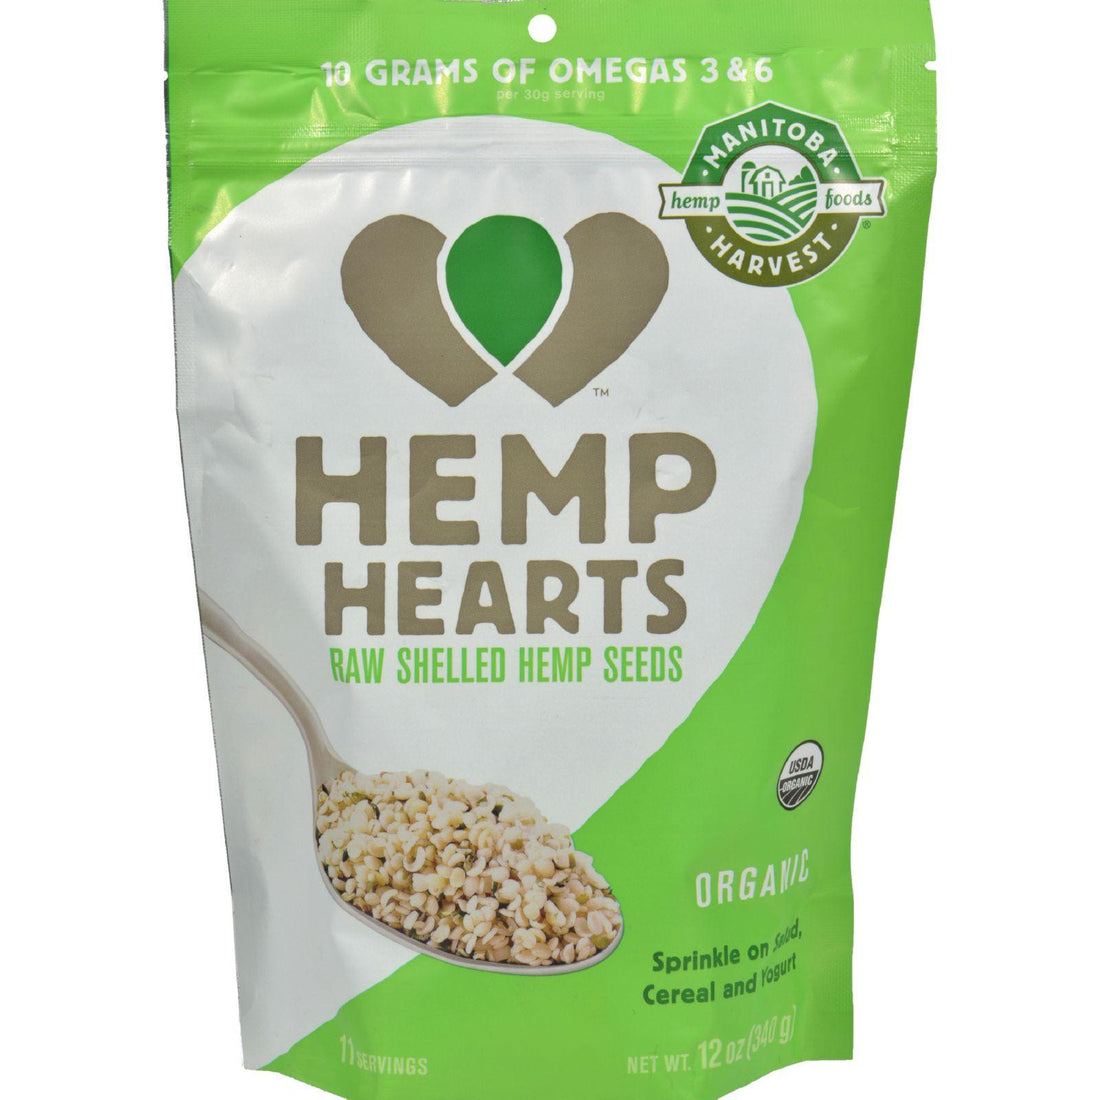 Mother Mantis: Manitoba Harvest Certified Organic Hemp Hearts Shelled Hemp Seed- Case Of 6 - 12 Oz Manitoba Harvest